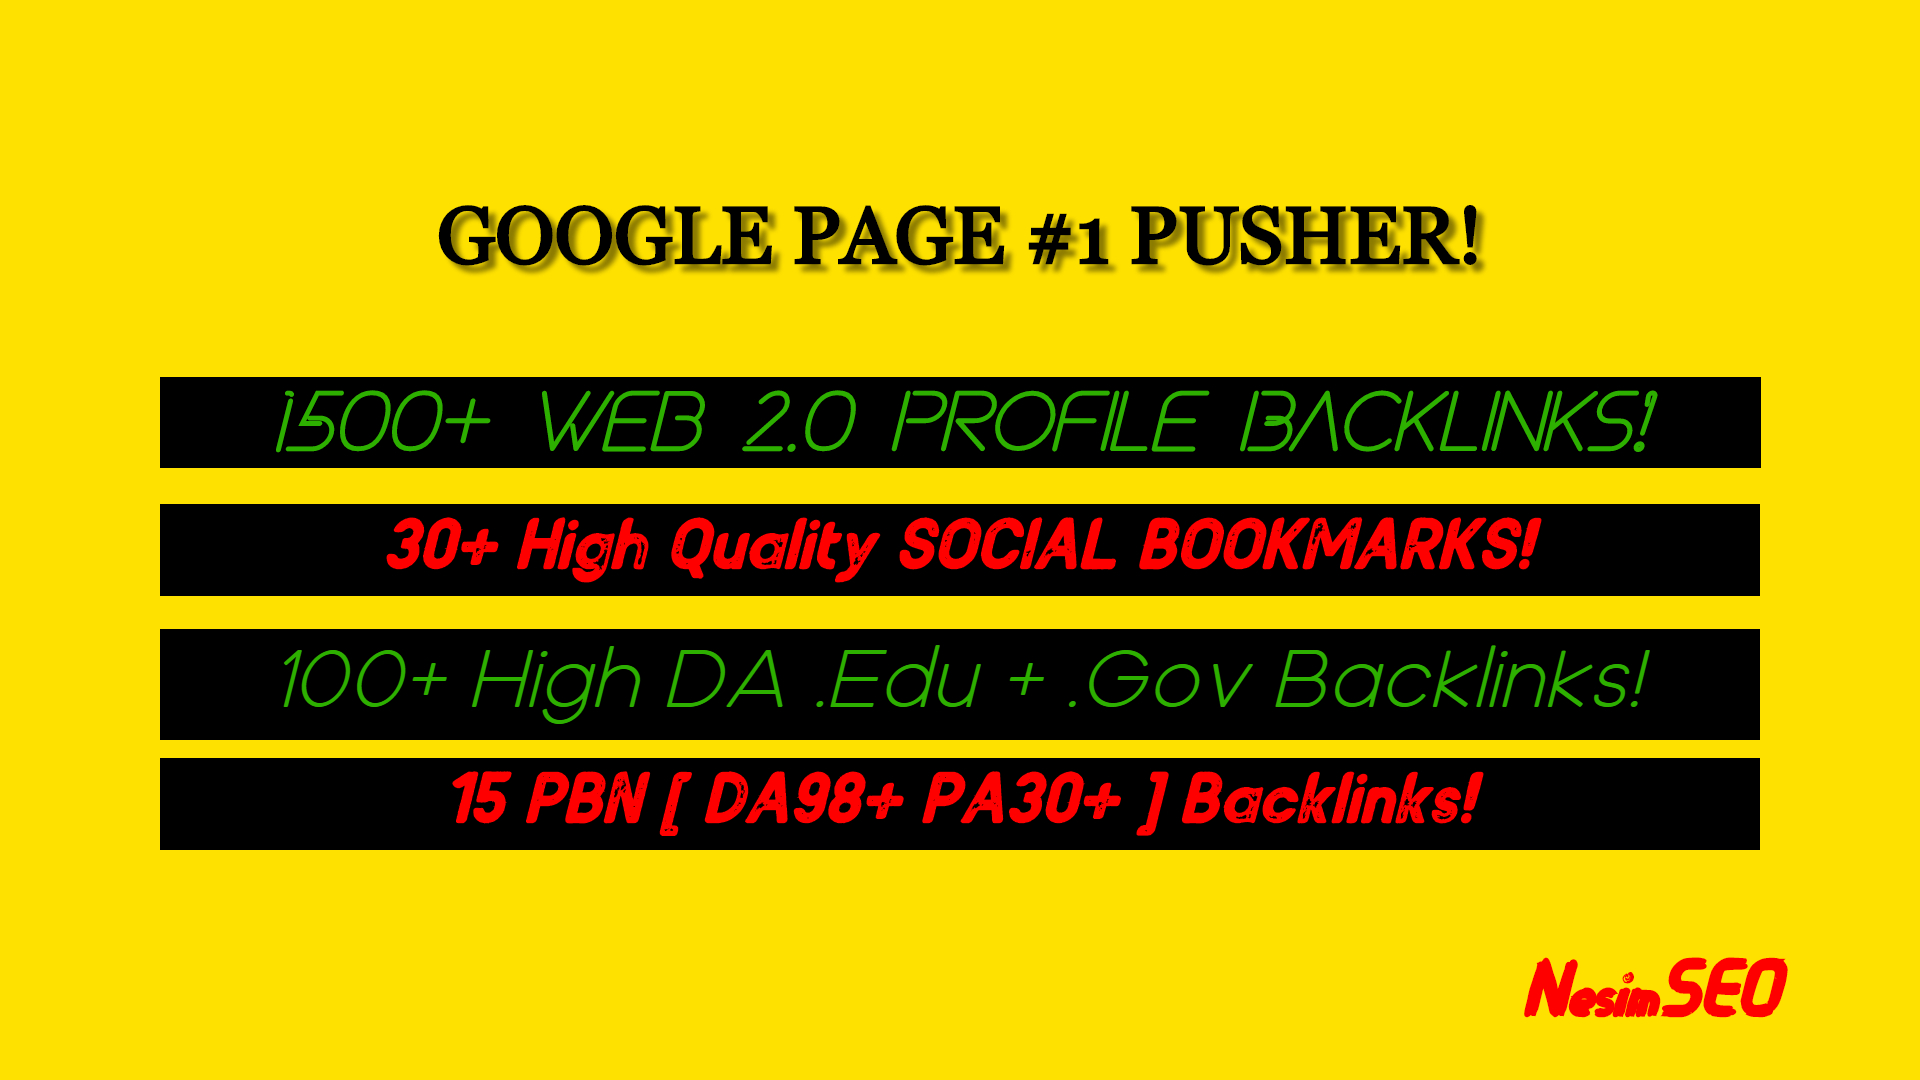 Google Page 1 PUSHER With 1500WEB2 & 15PBN & 100EDU